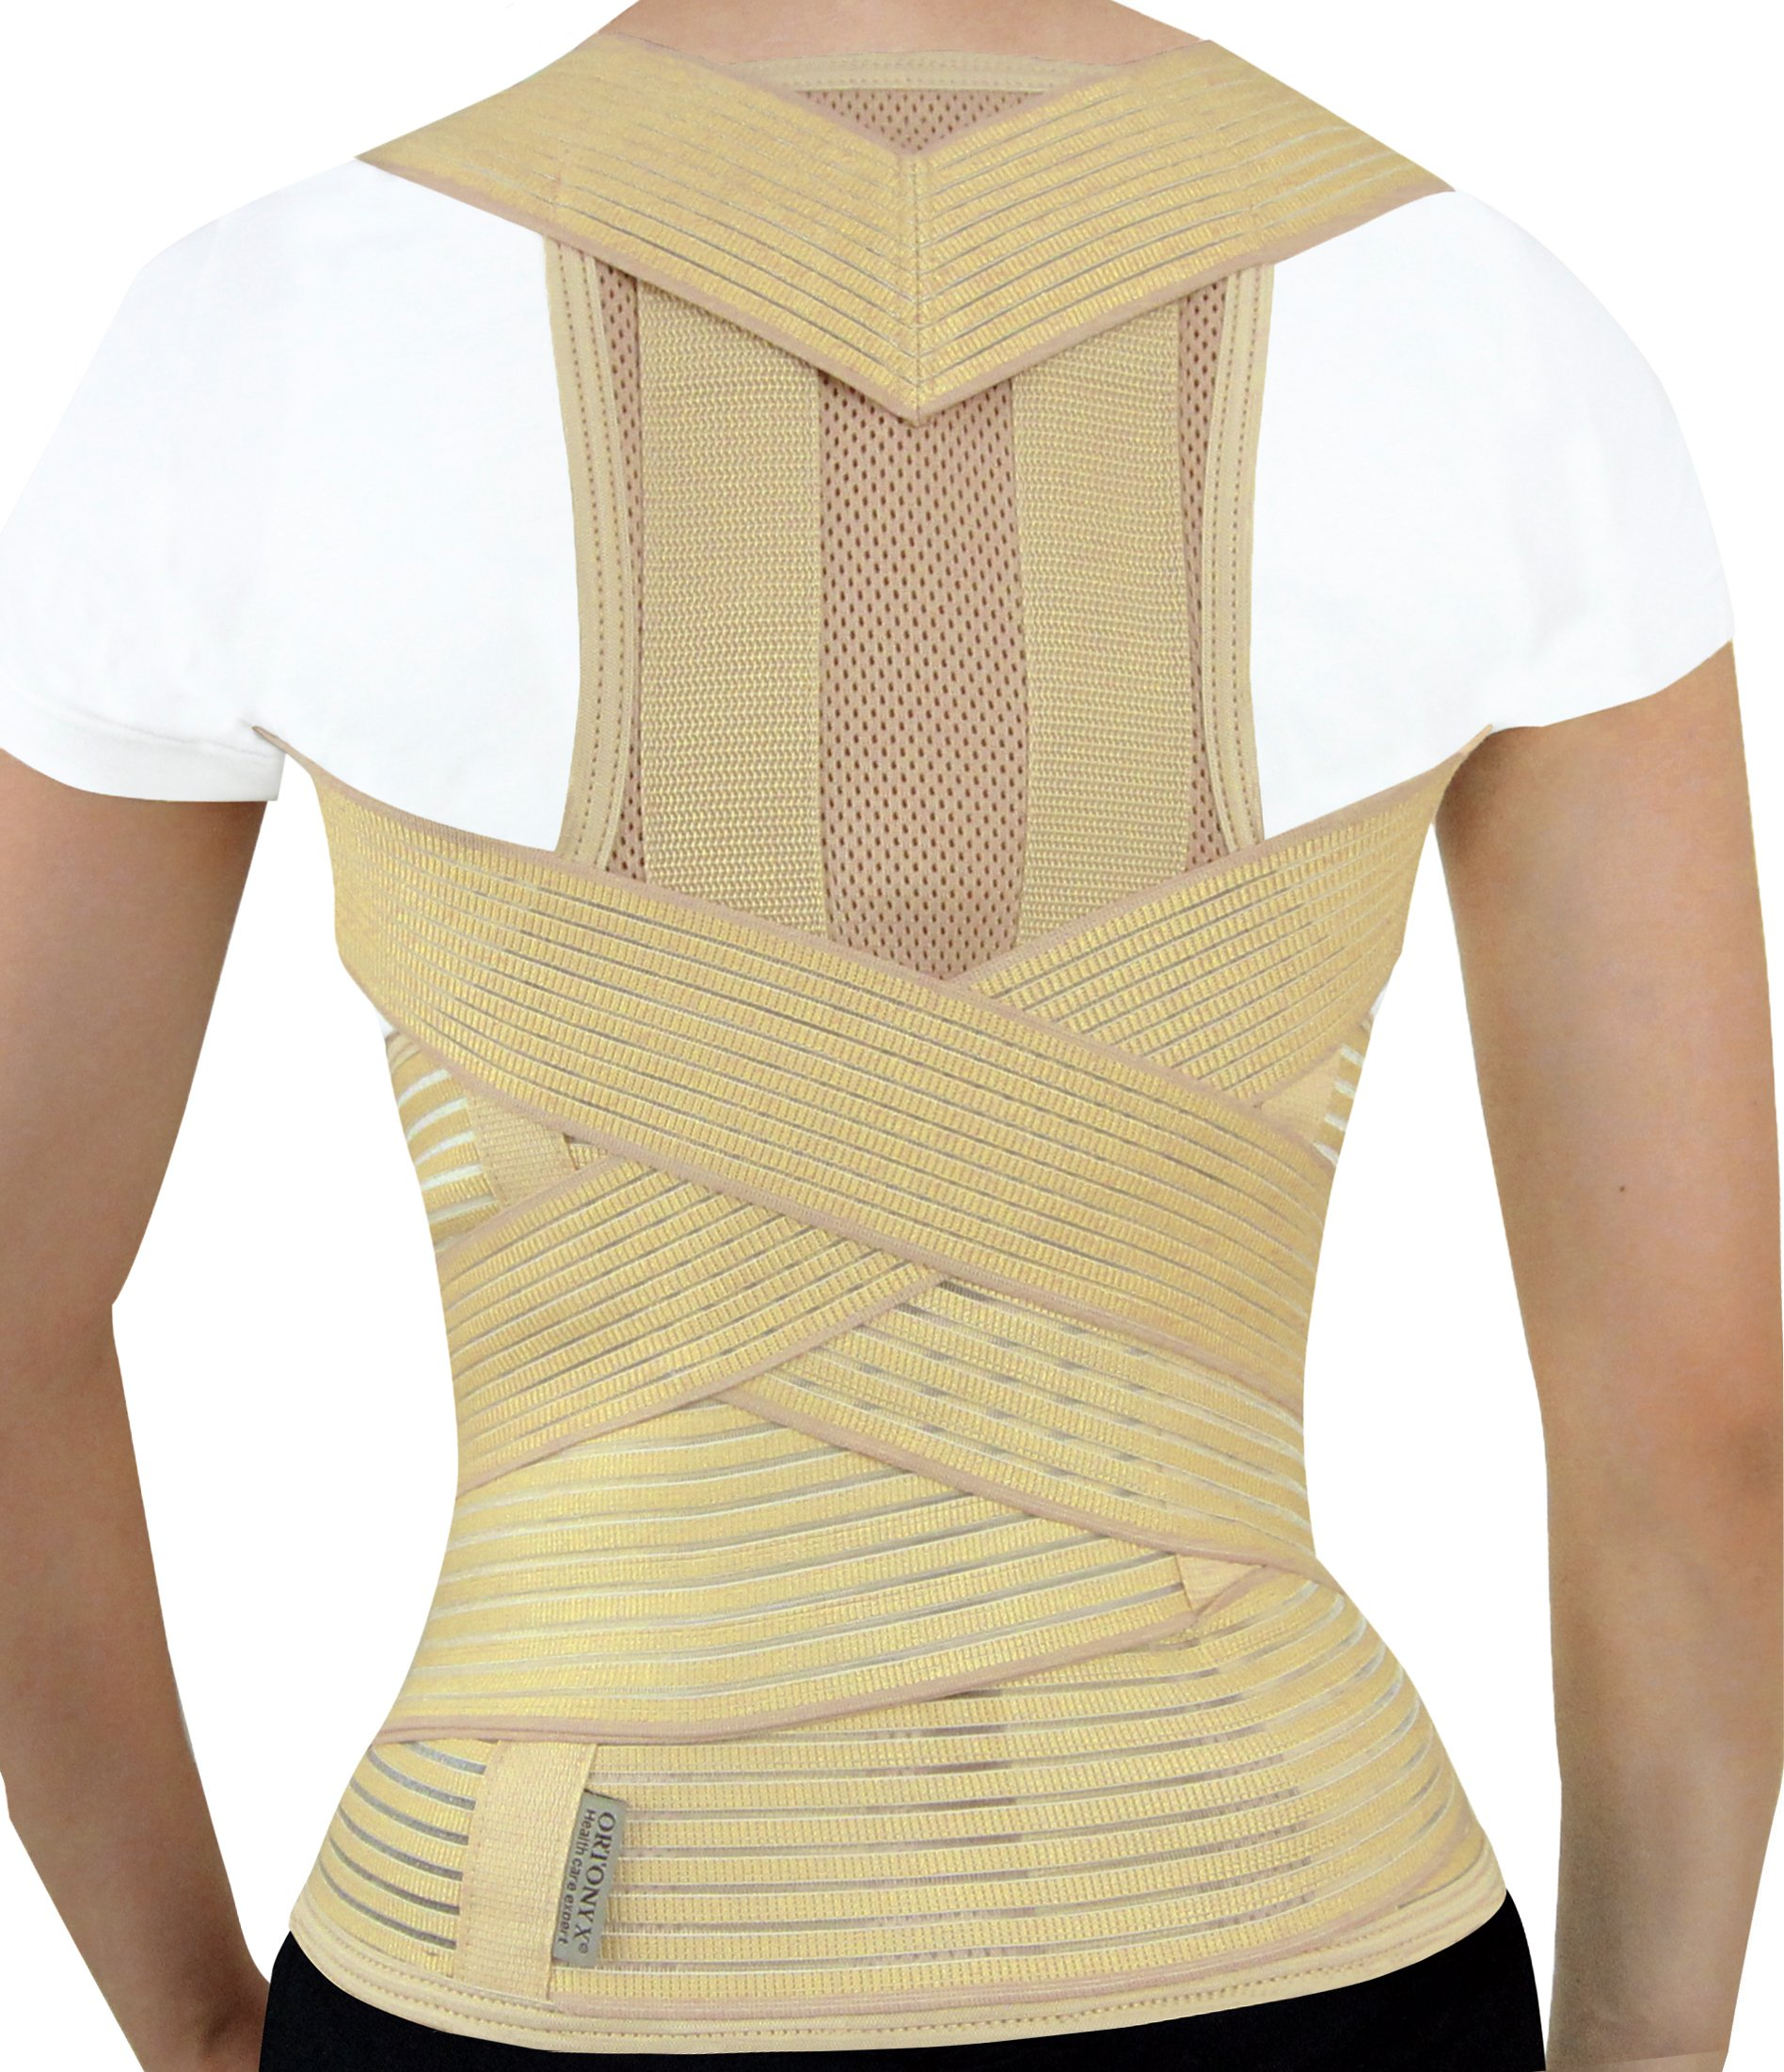 ORTONYX Active Posture Corrector Clavicle and Shoulder Support Back Brace, Fully Adjustable for Men and Women - L Beige by ORTONYX